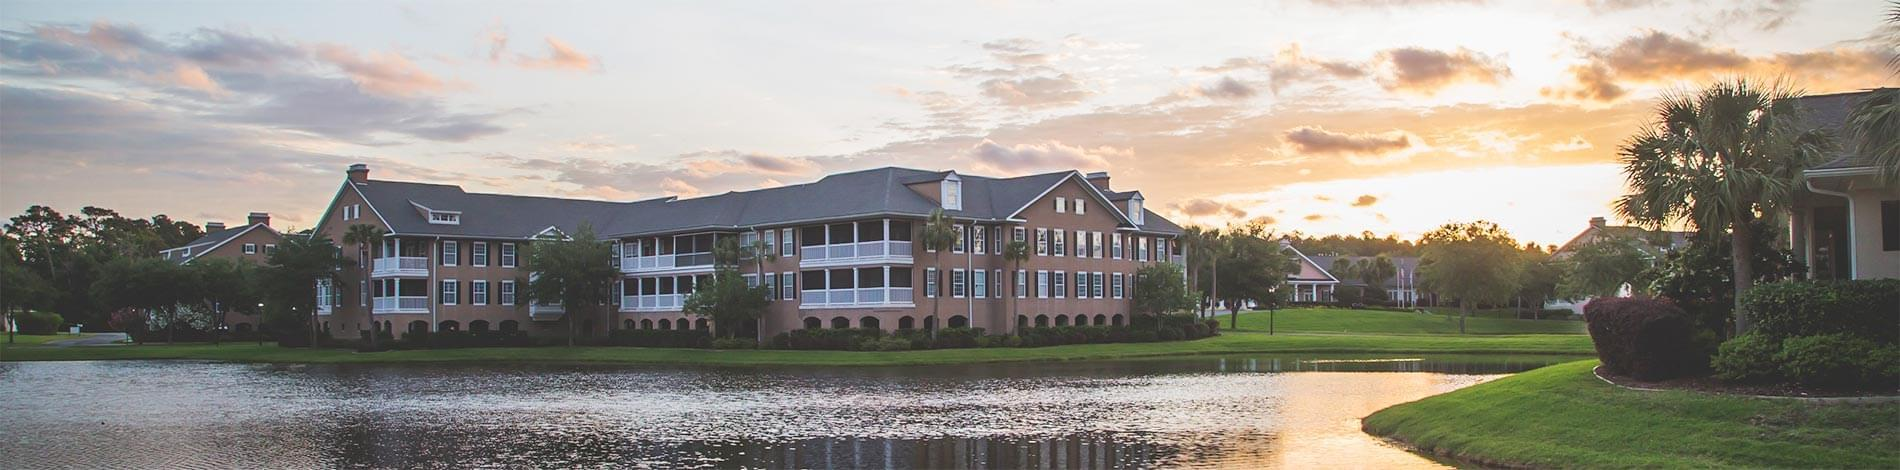 Photo of Marsh Edge, Assisted Living, Nursing Home, Independent Living, CCRC, Saint Simons Island, GA 11